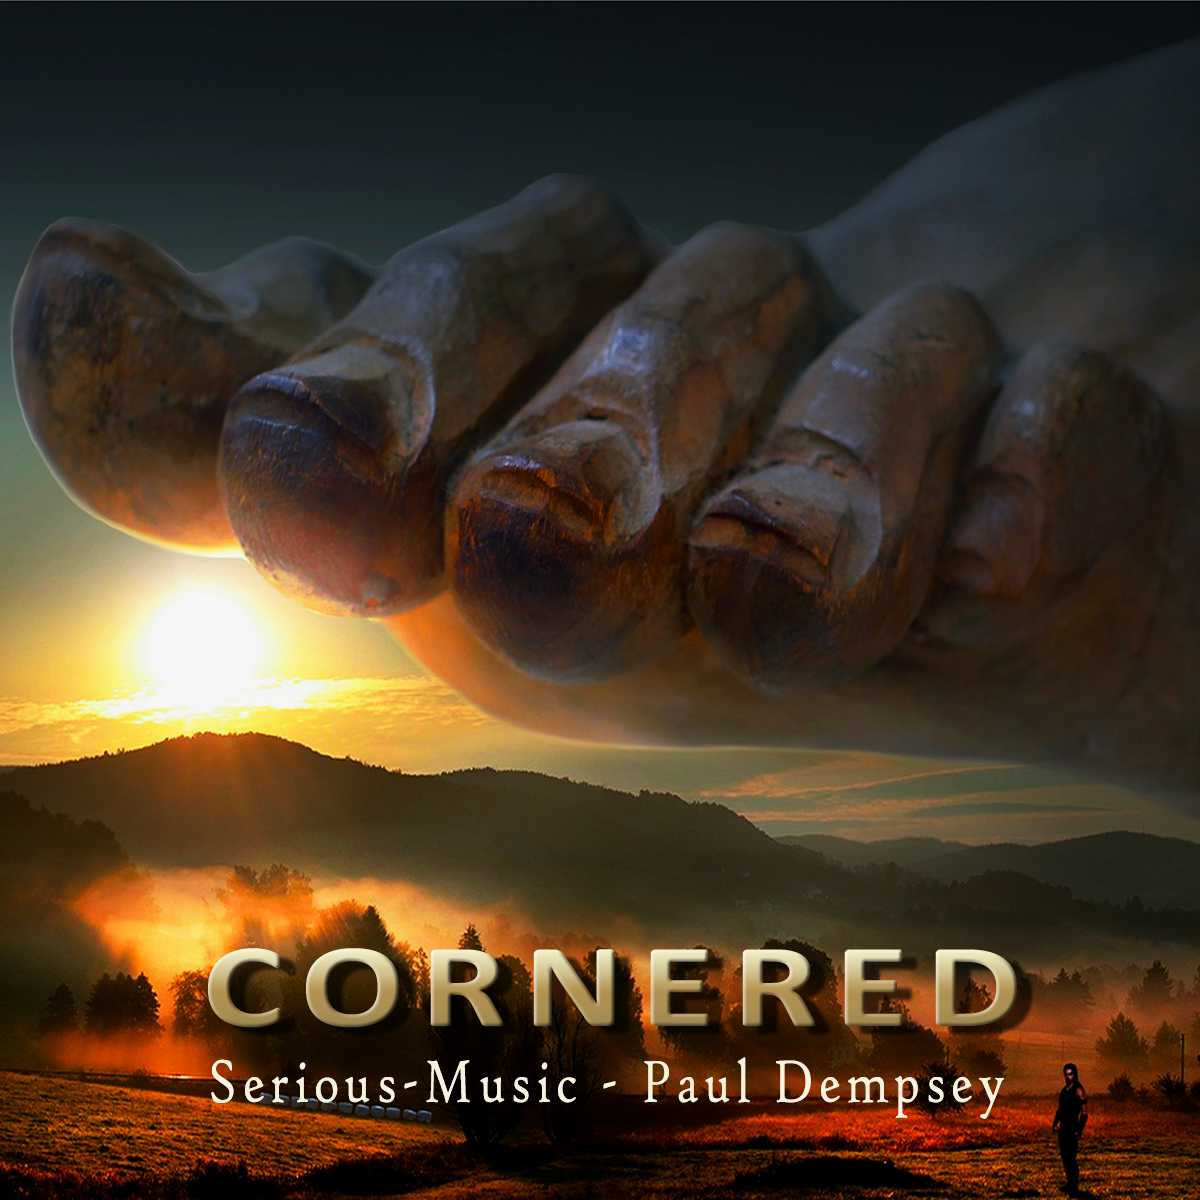 Cornered feat. Paul Dempsey - Album TRUTH